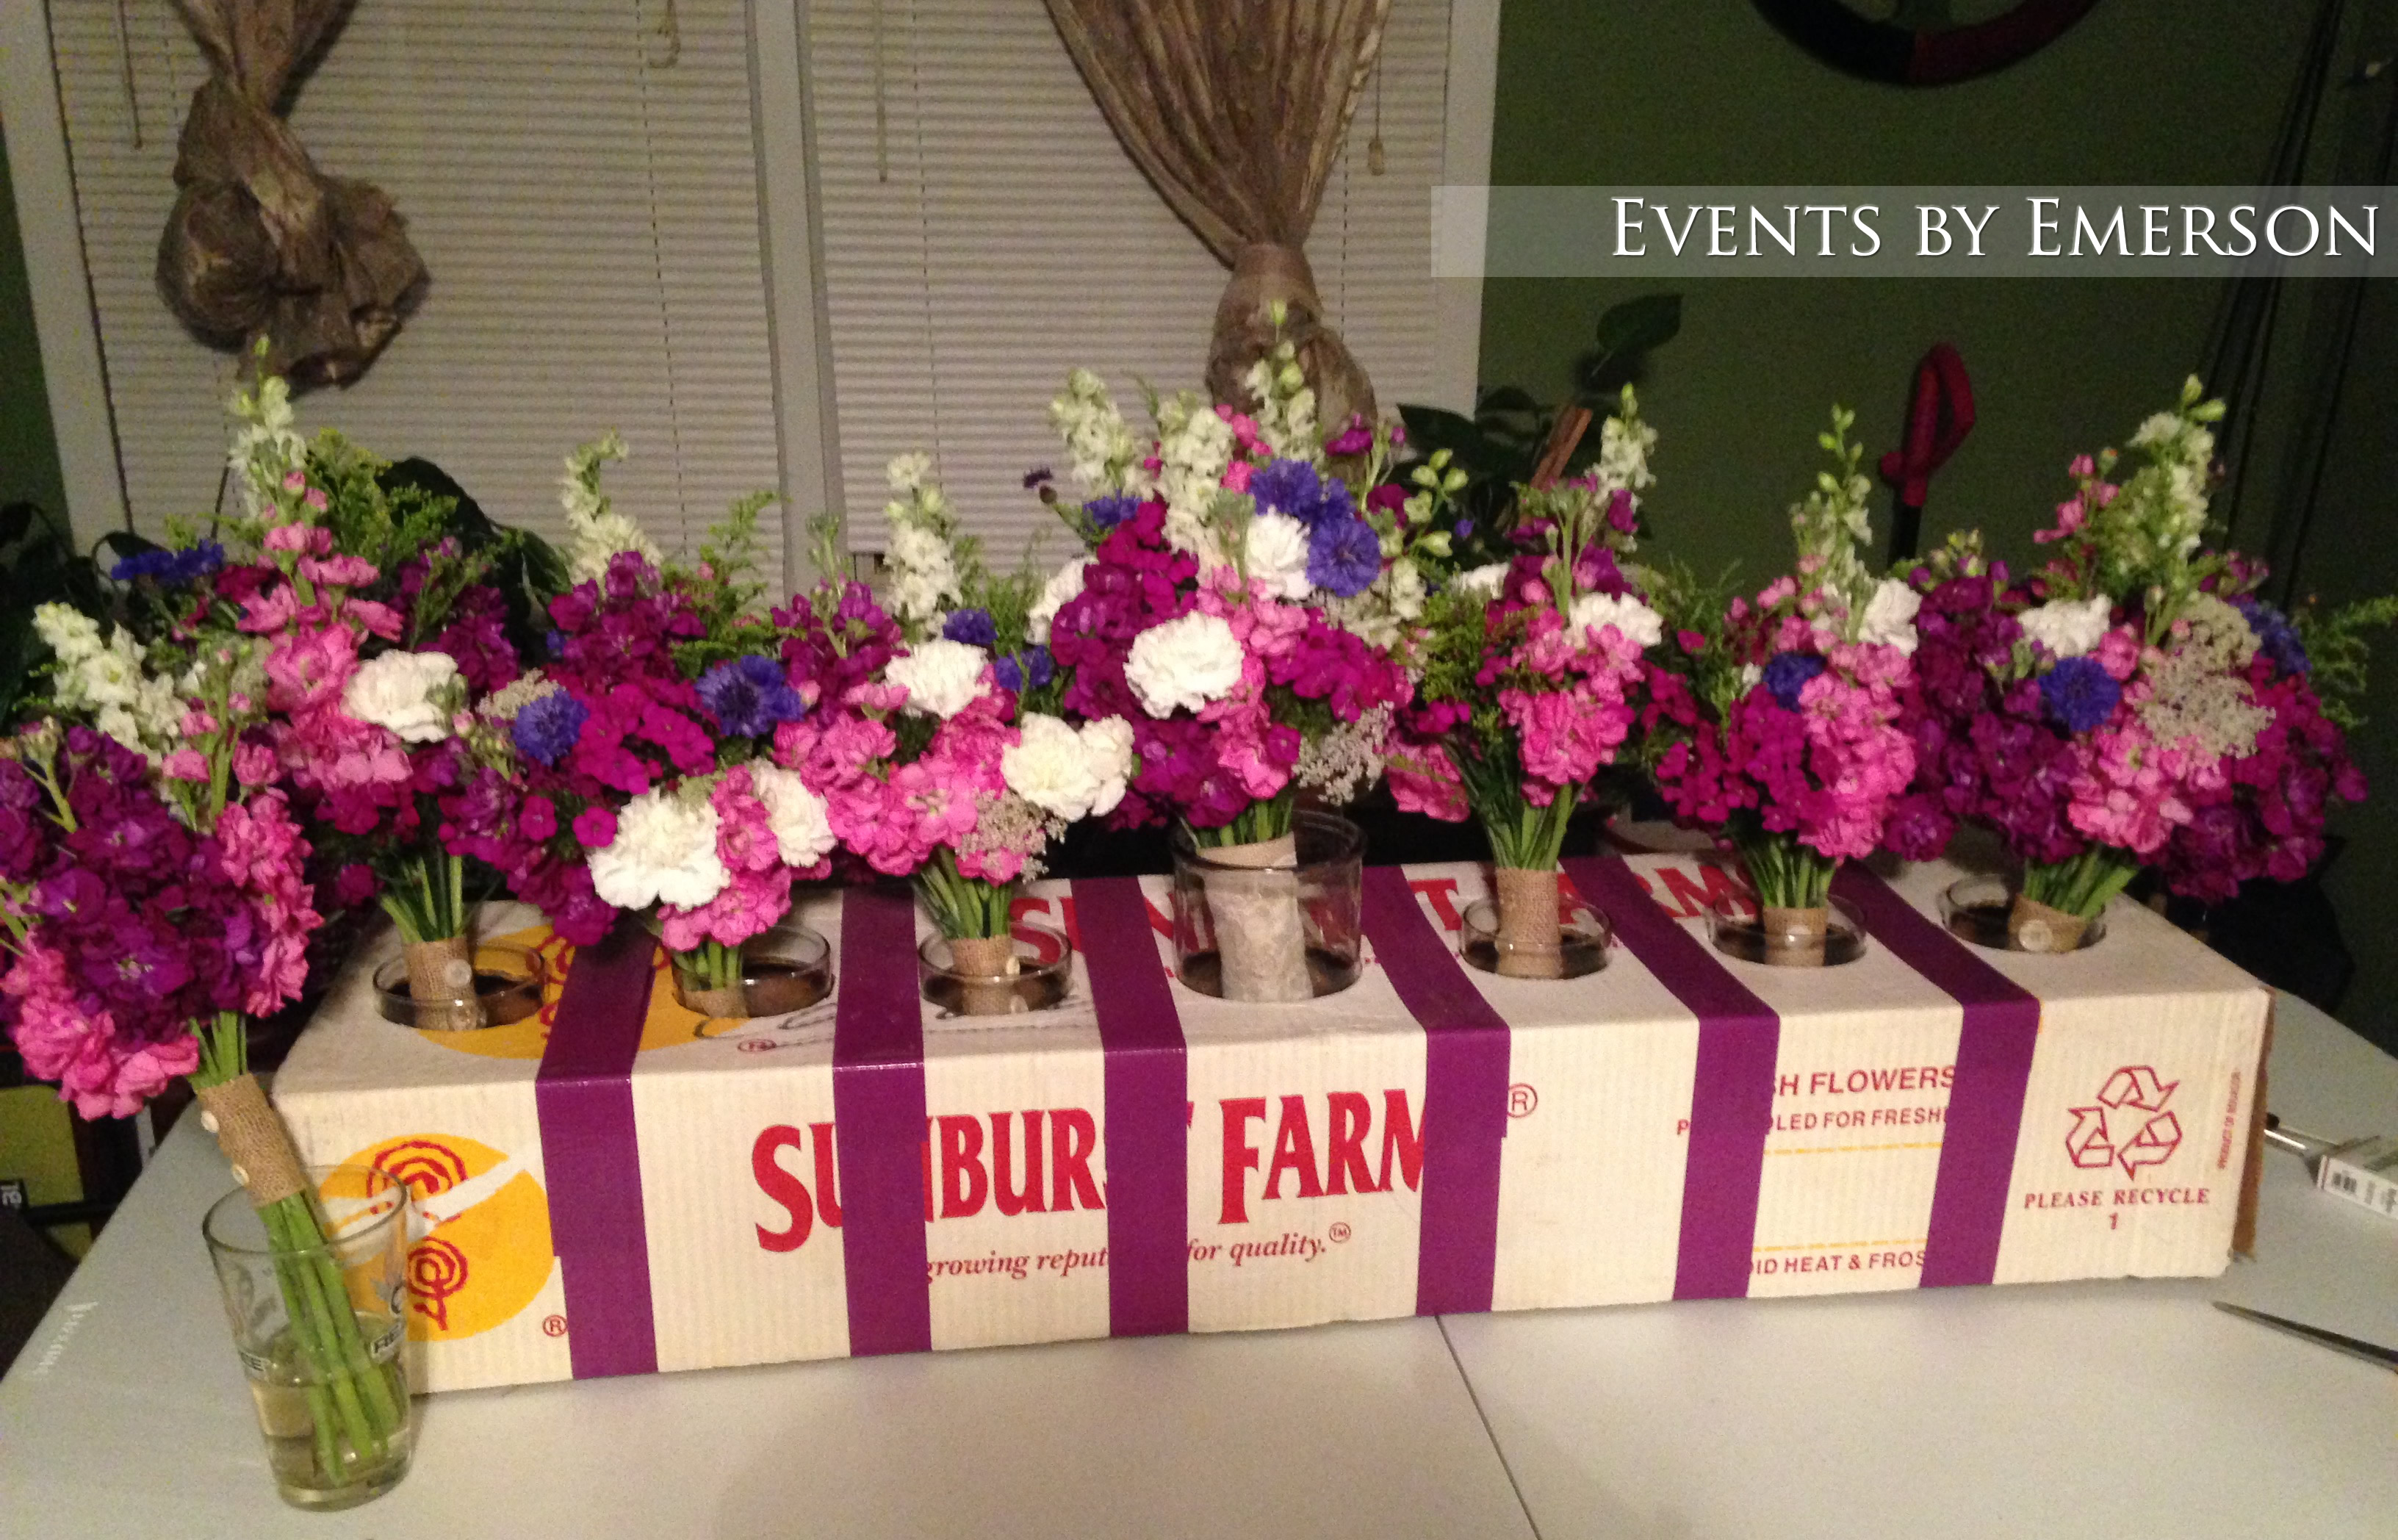 How To Transport Bouquets And Floral Arrangements Events By Emerson